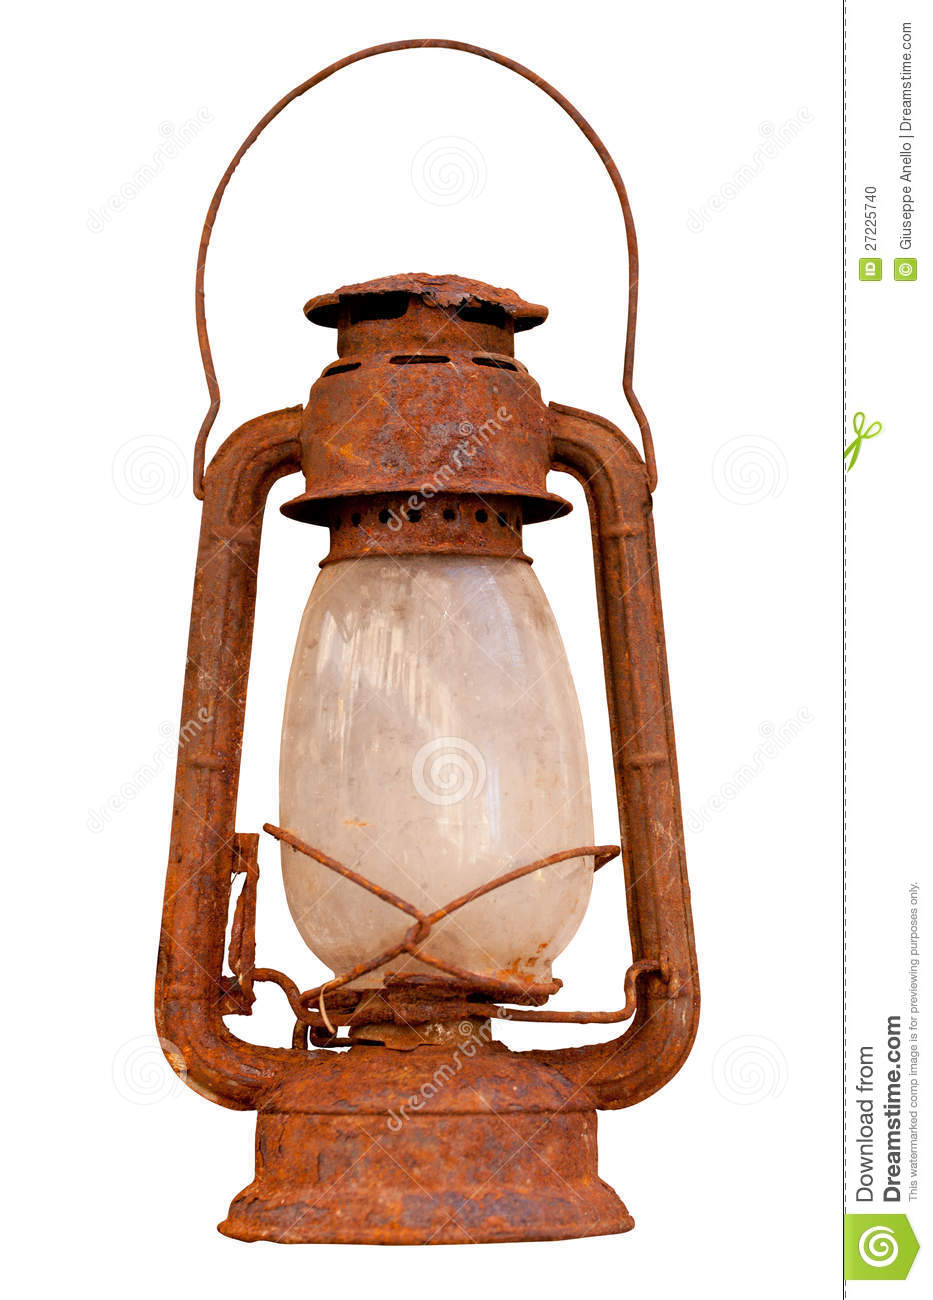 Old Rusty Lantern Stock Photo Image Of Metal Isolated